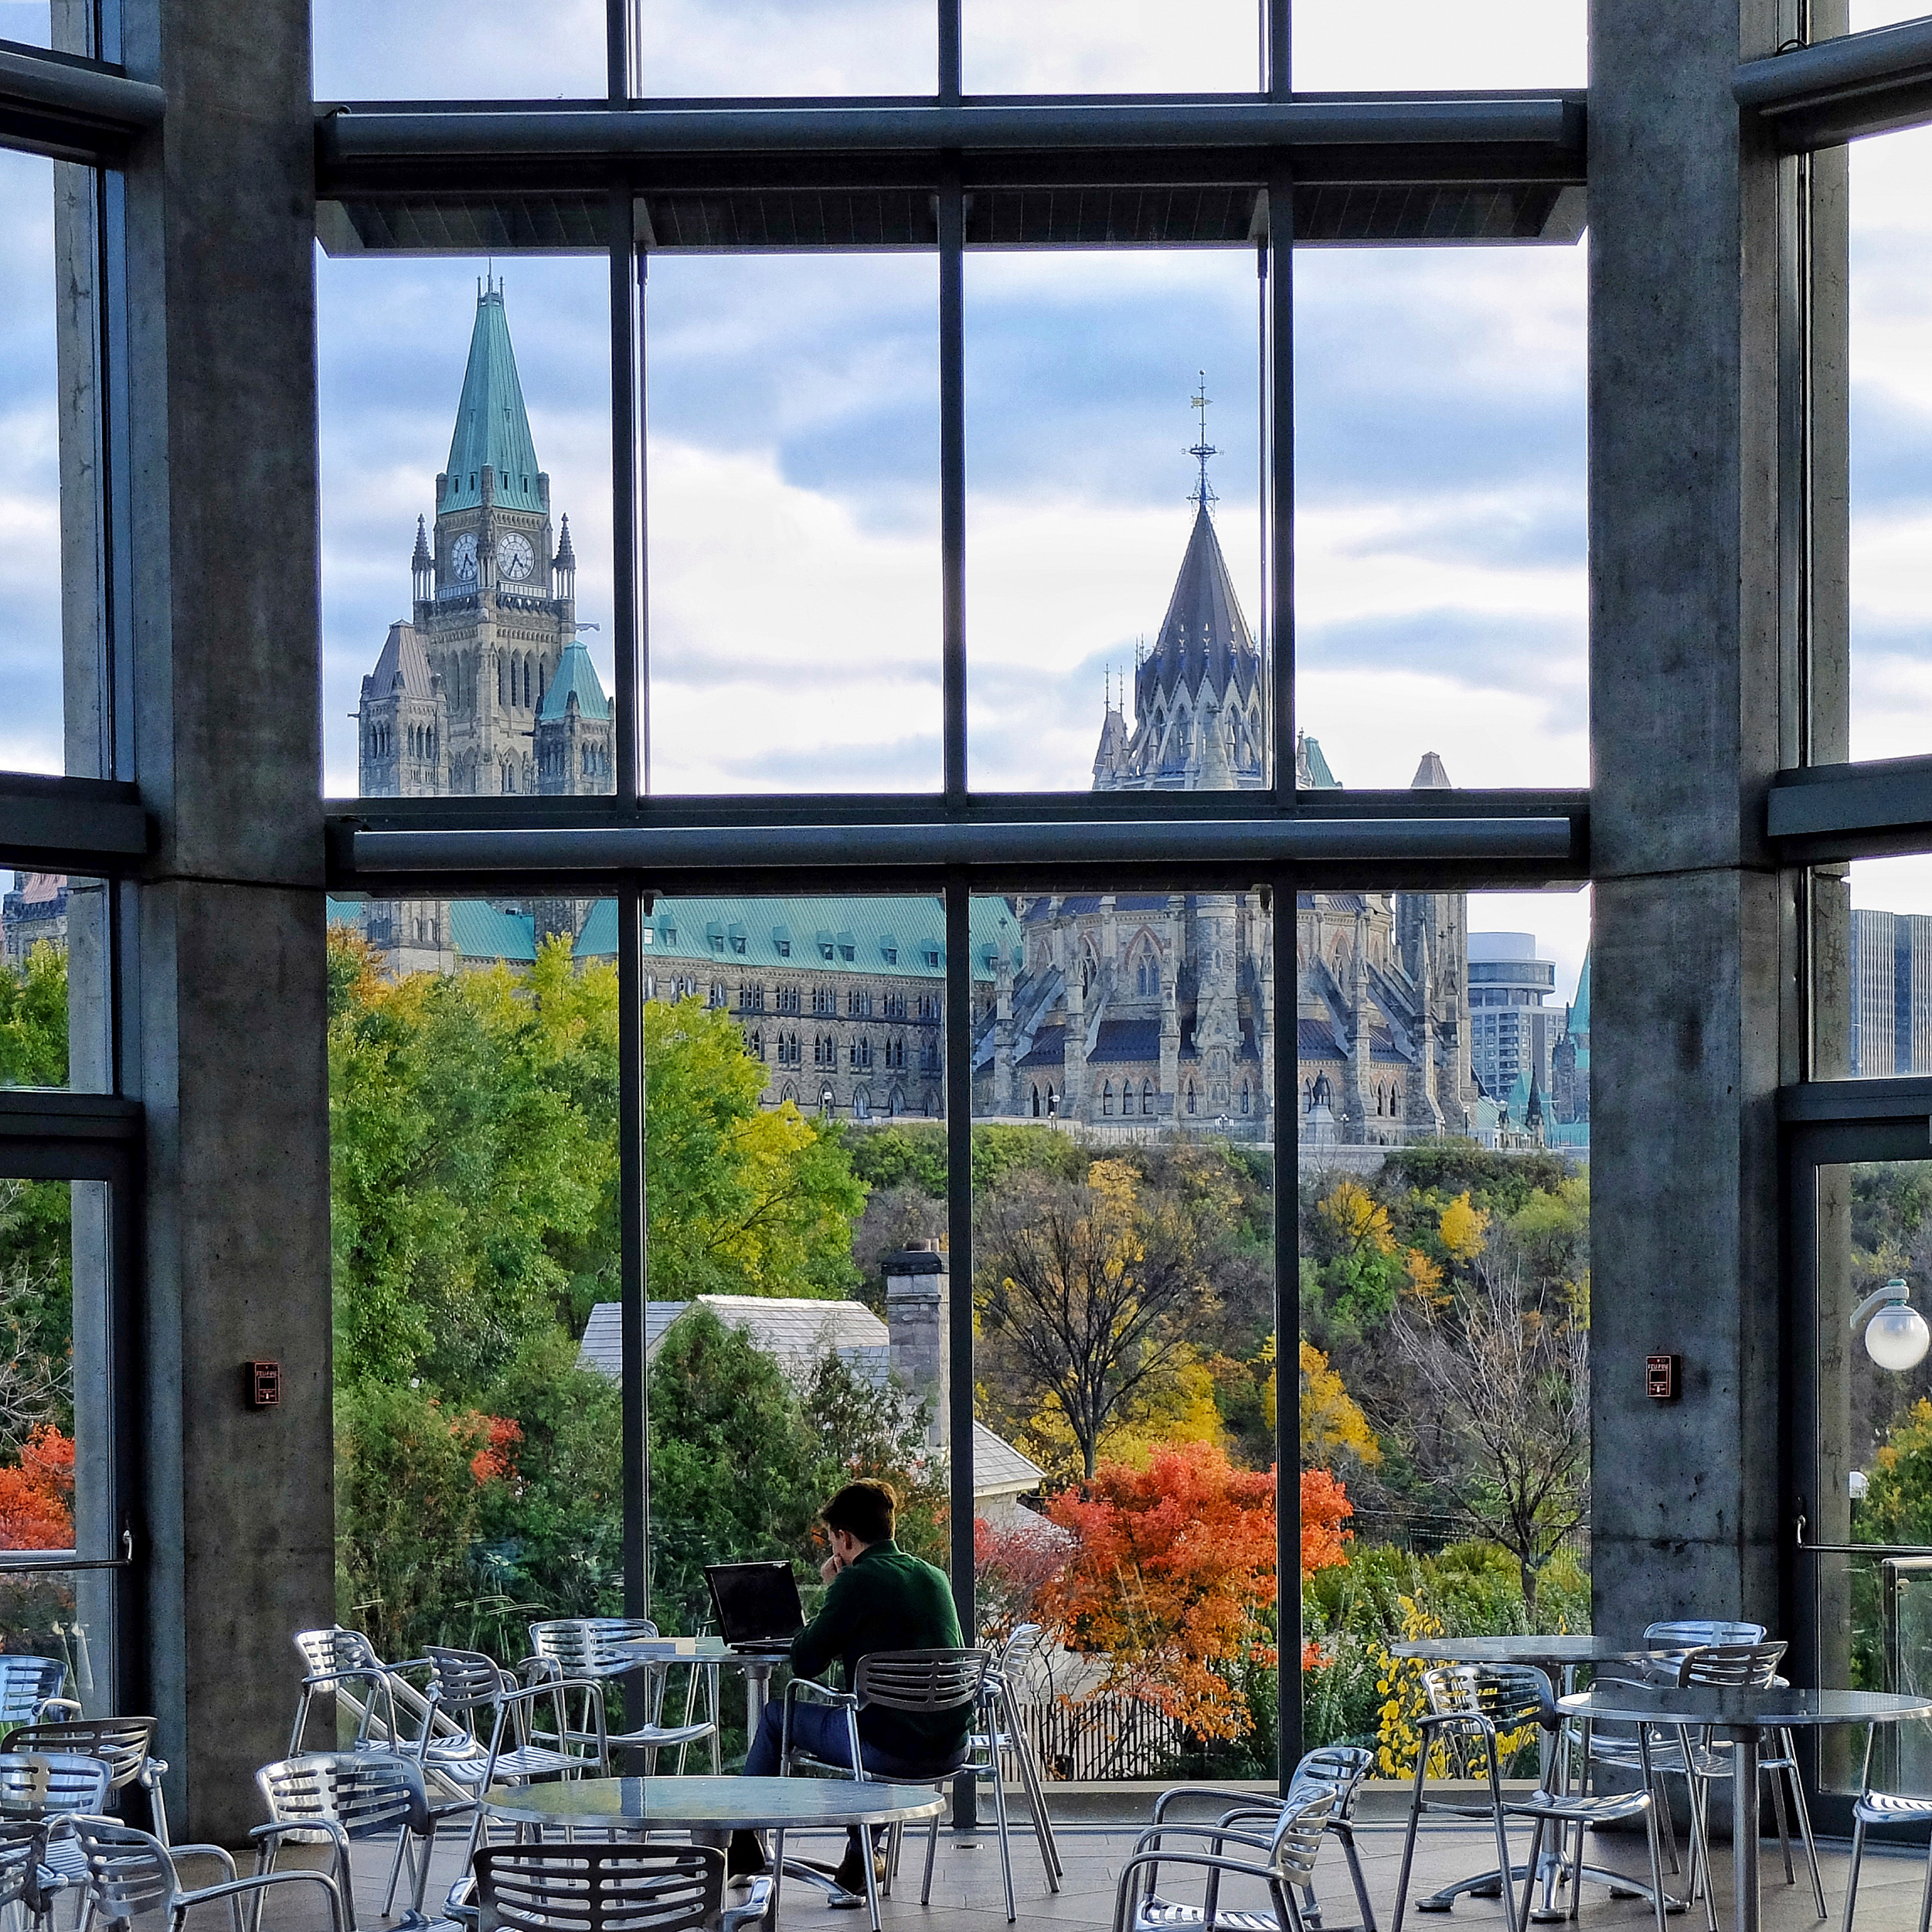 loveOttawa_Parliament_Gallery_final.jpg